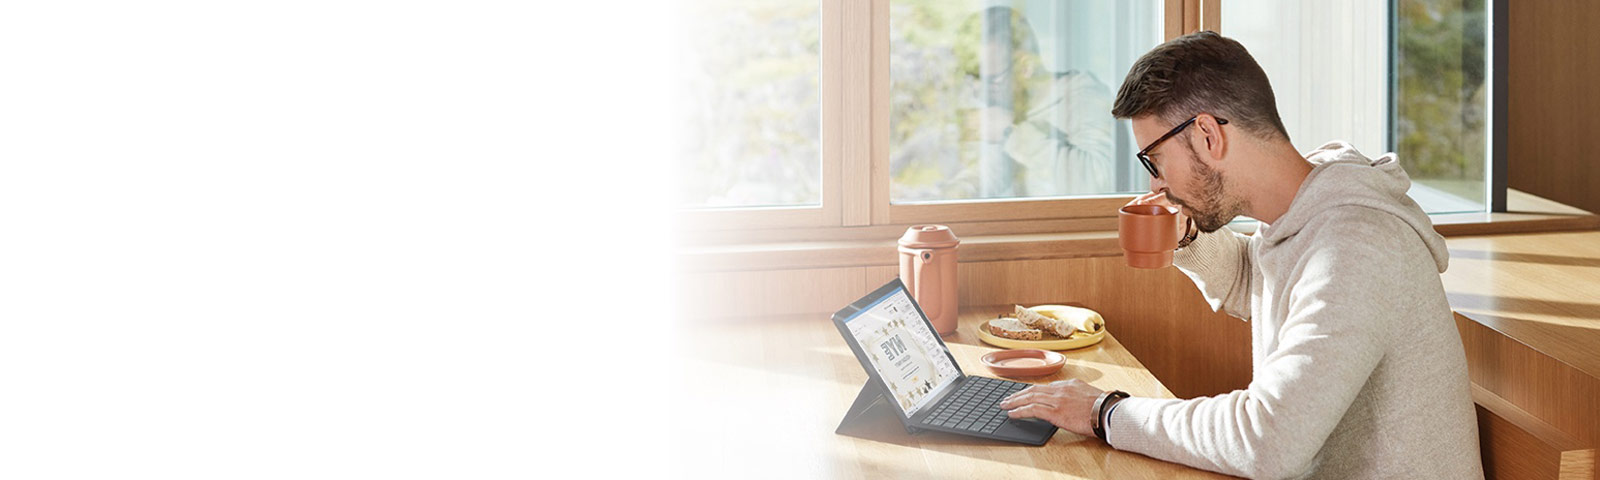 Person works on computer over breakfast in a sunny room